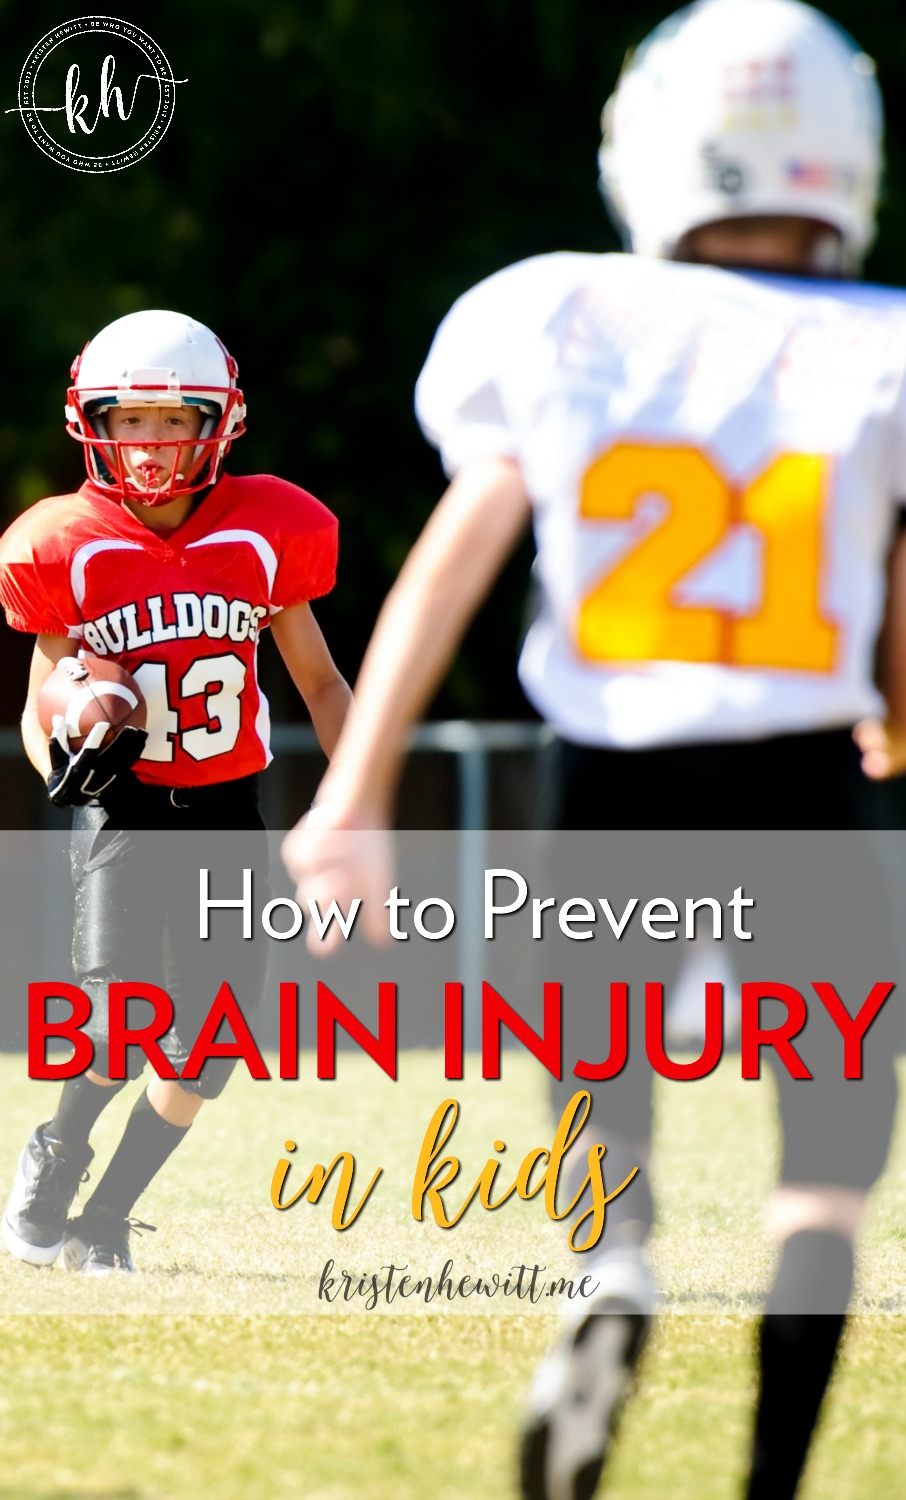 How to prevent brain injury in children. These tips will help your family learn about the importance of traumatic brain injuries and how to prevent them.